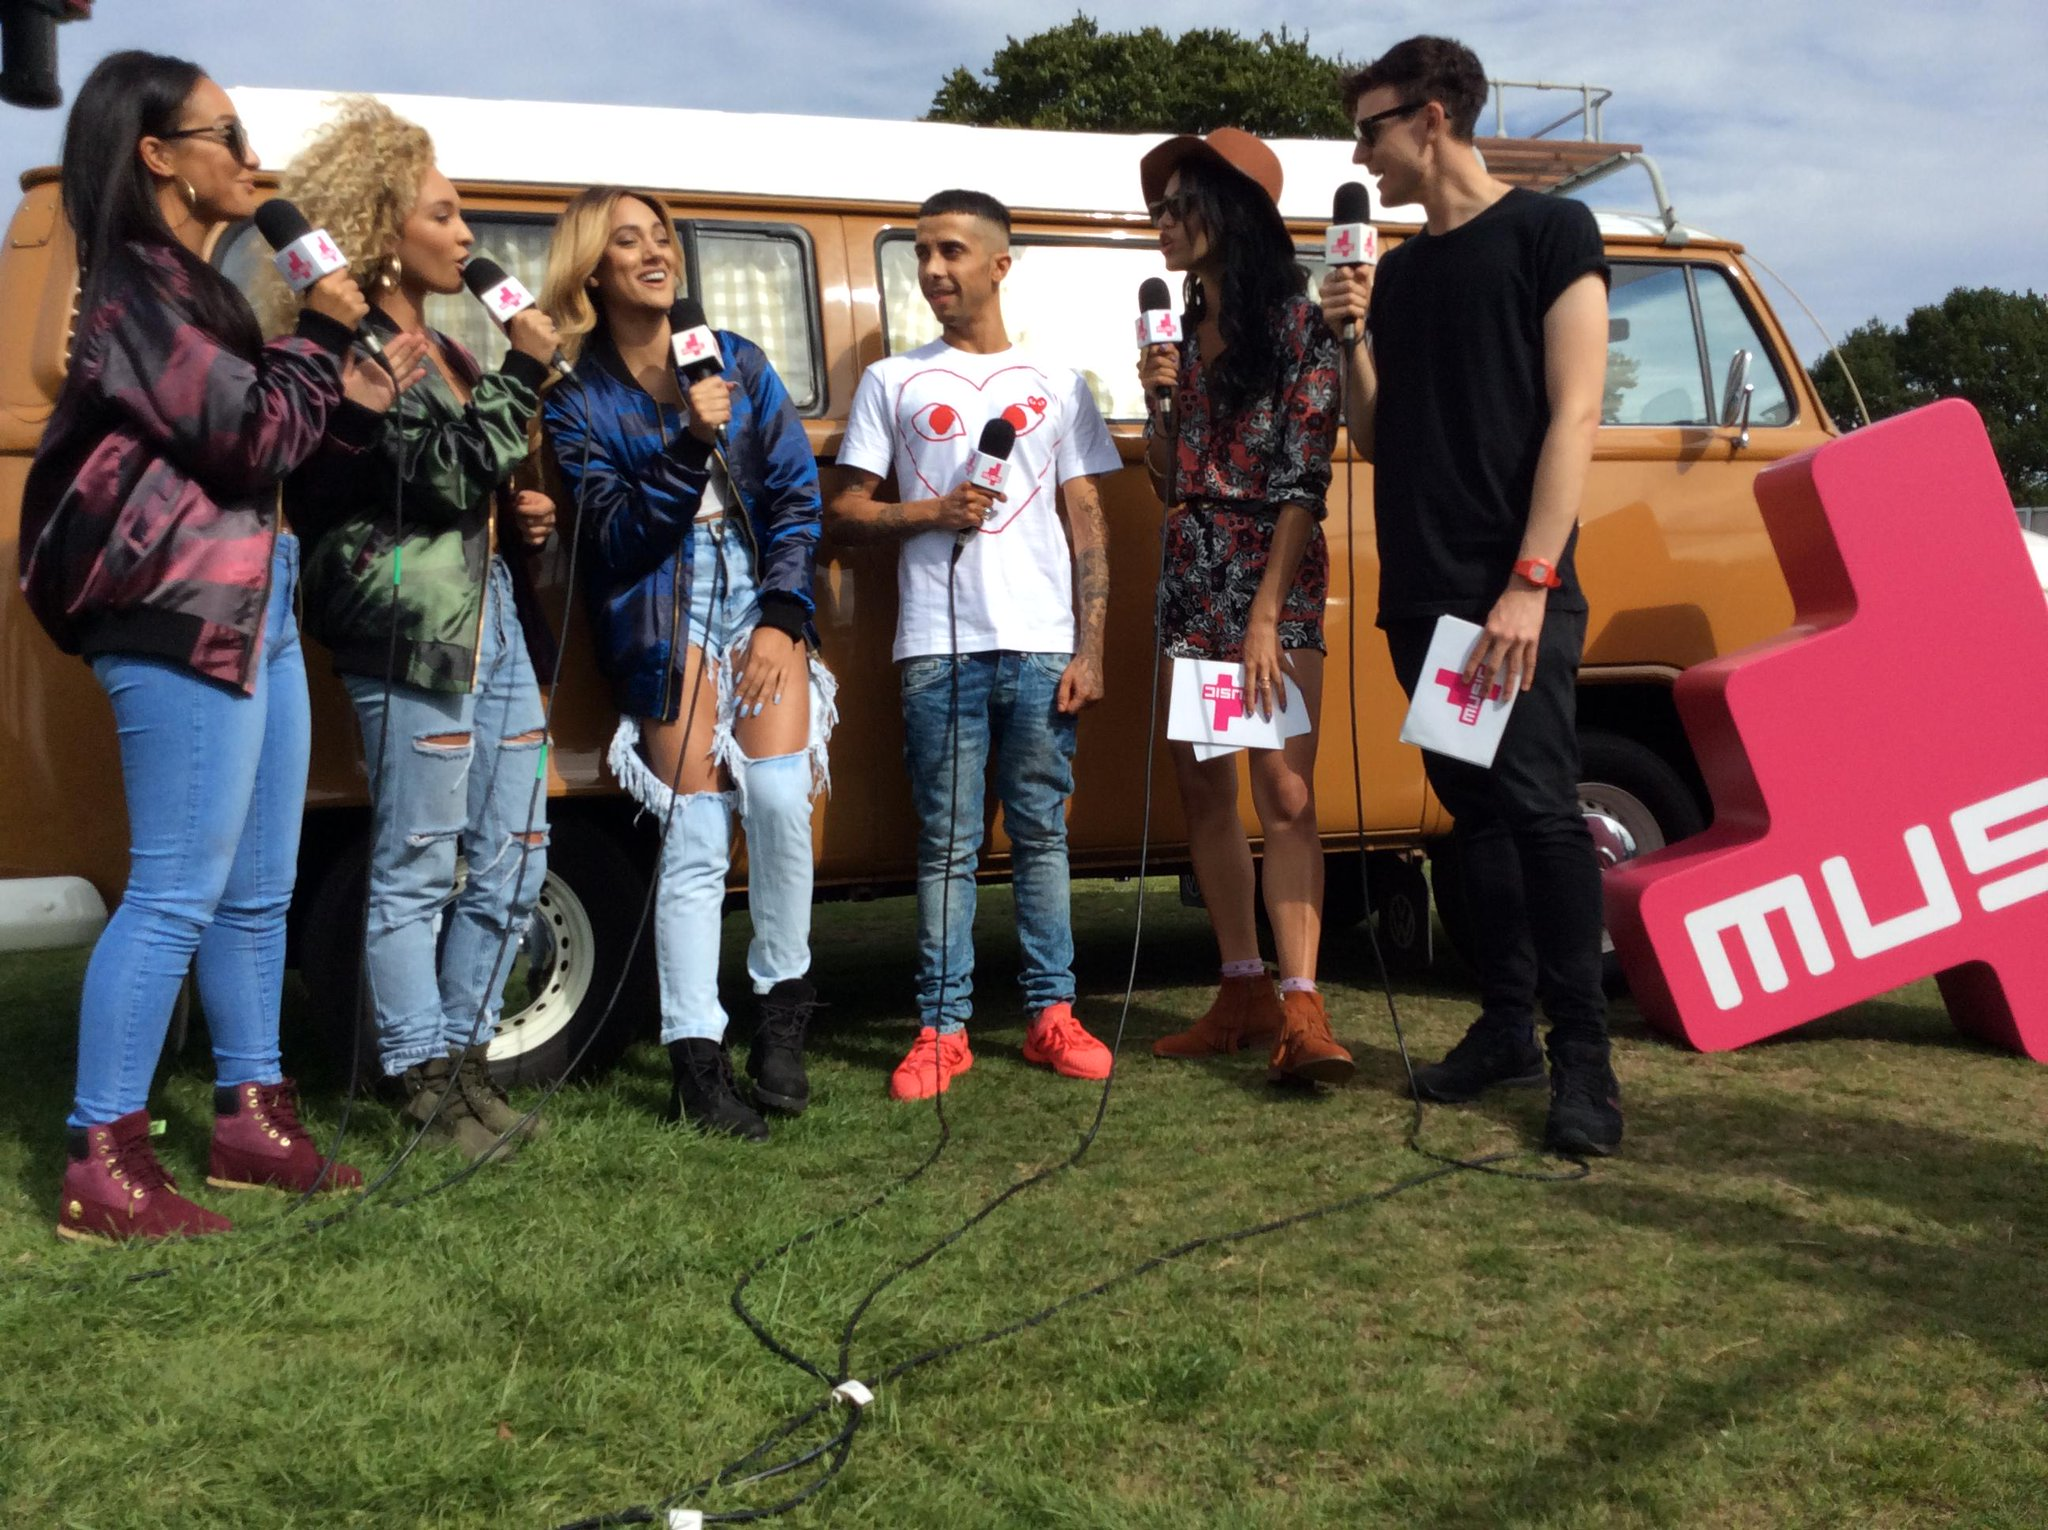 RT @4Music: @TheDappy & @MOMusic in the housse!! Double whammy! @fusionfest #CoftonPark #4MusicFusion http://t.co/FQTxttrZAT http://t.co/nN…